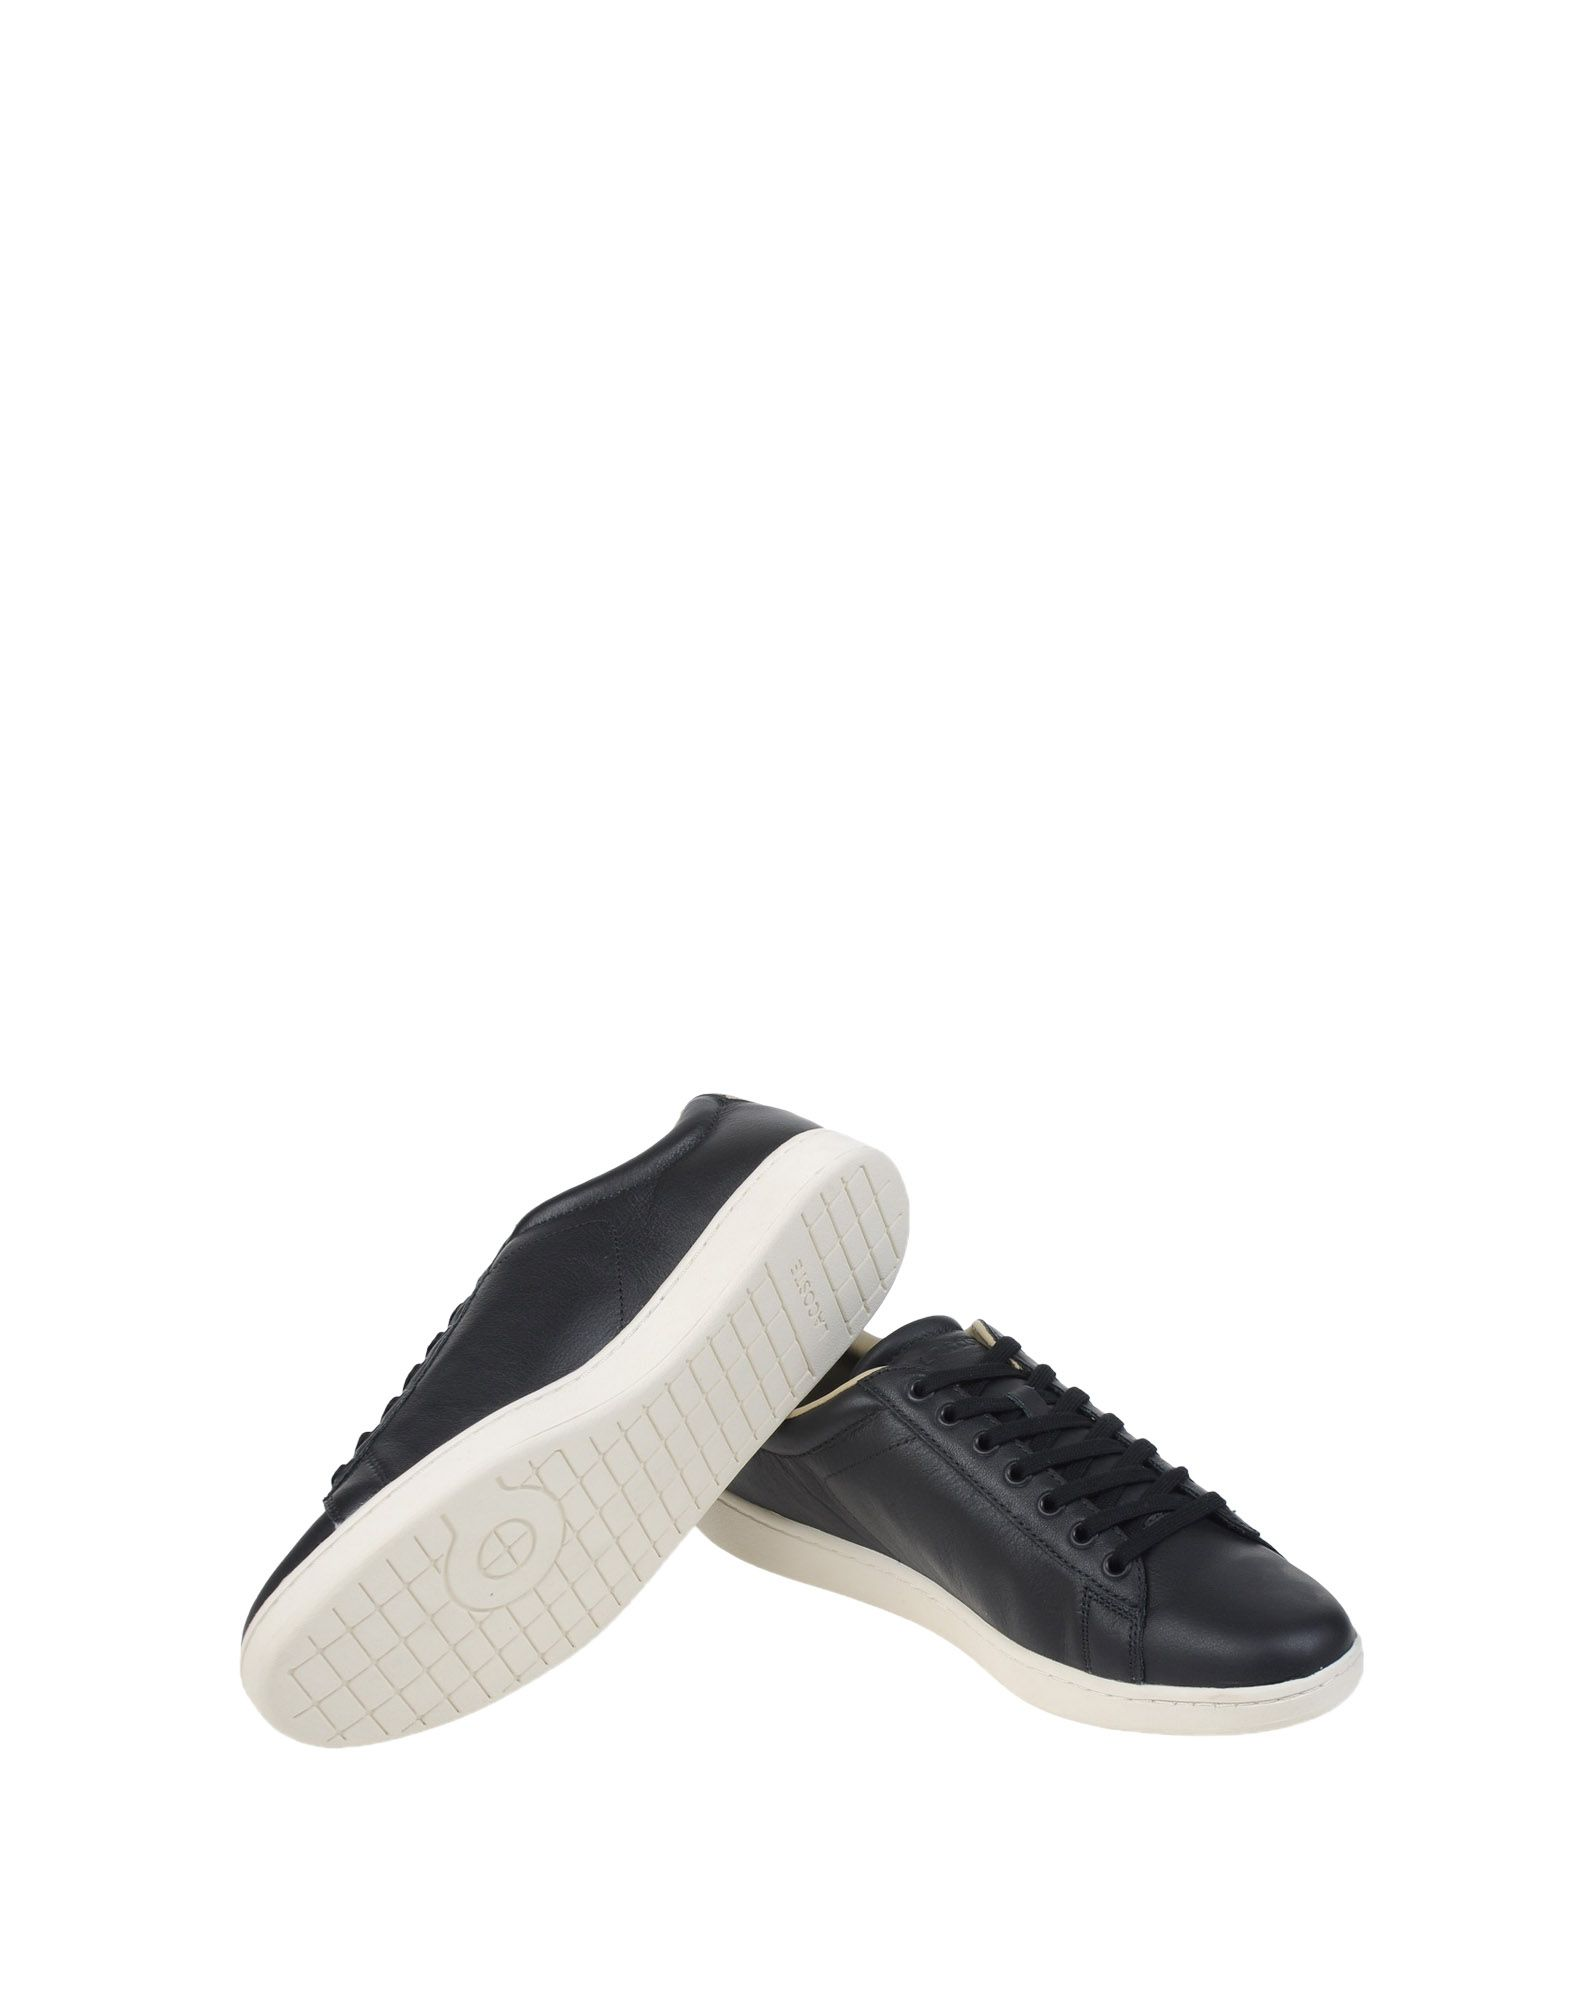 Sneakers Lacoste Carnaby Evo 316 1 - Homme - Sneakers Lacoste sur